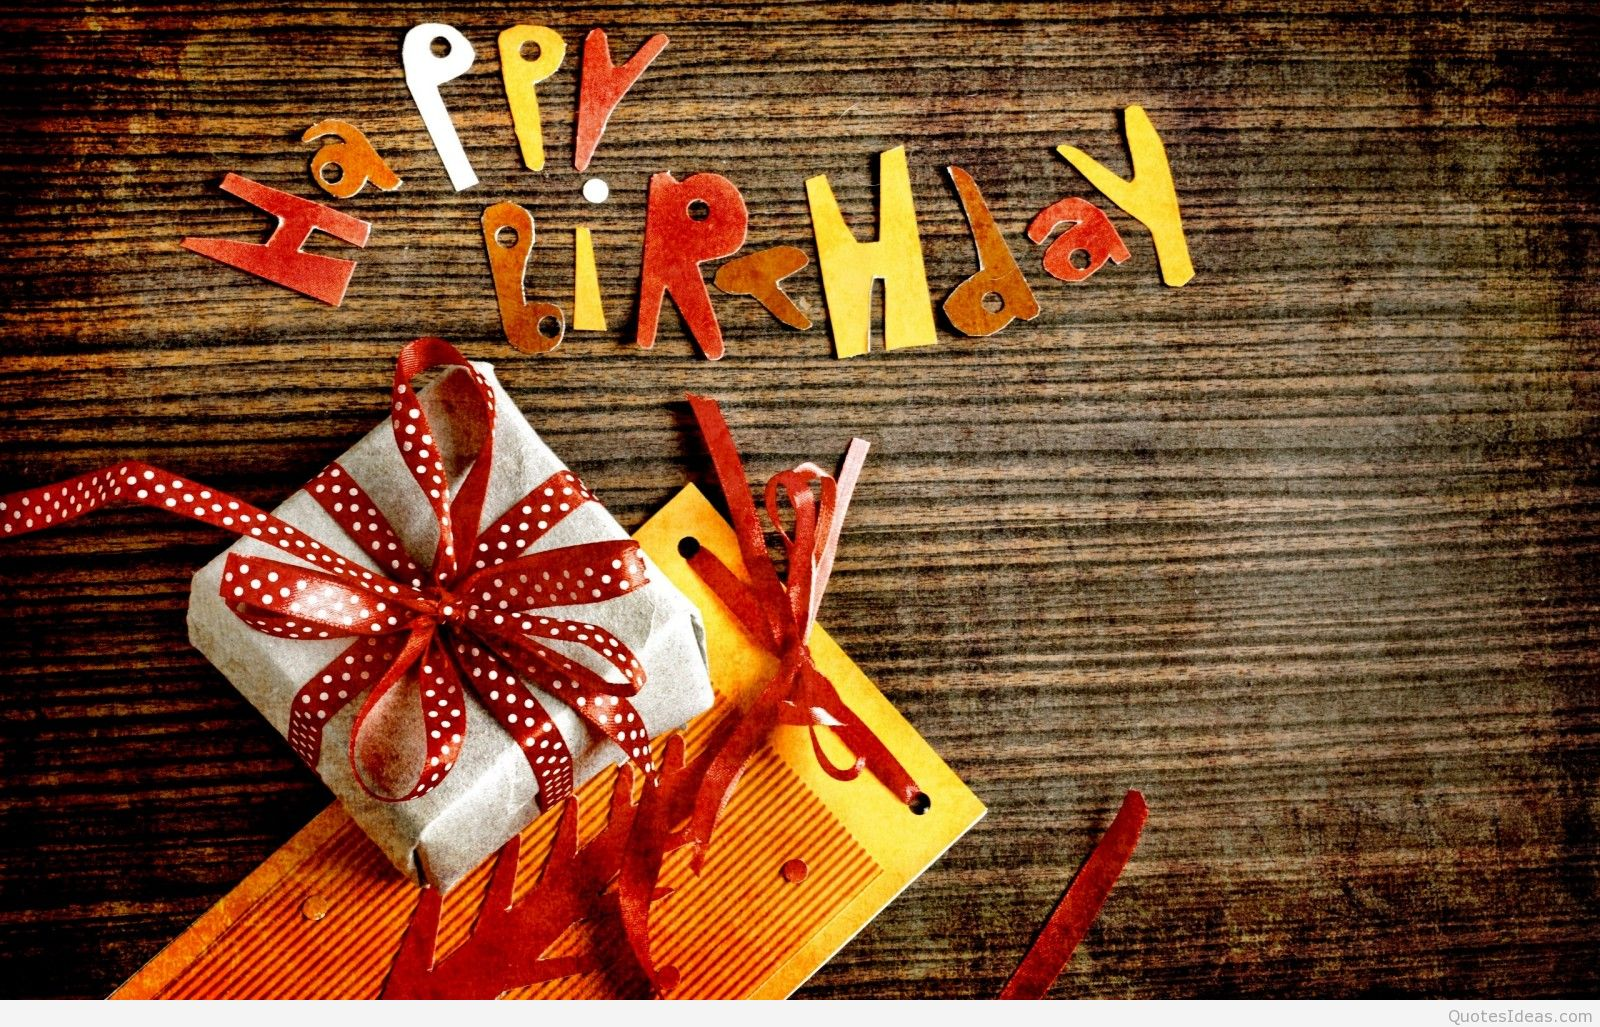 birthday images hd wallpaper ; Awesome-Happy-birthday-hd-wallpaper